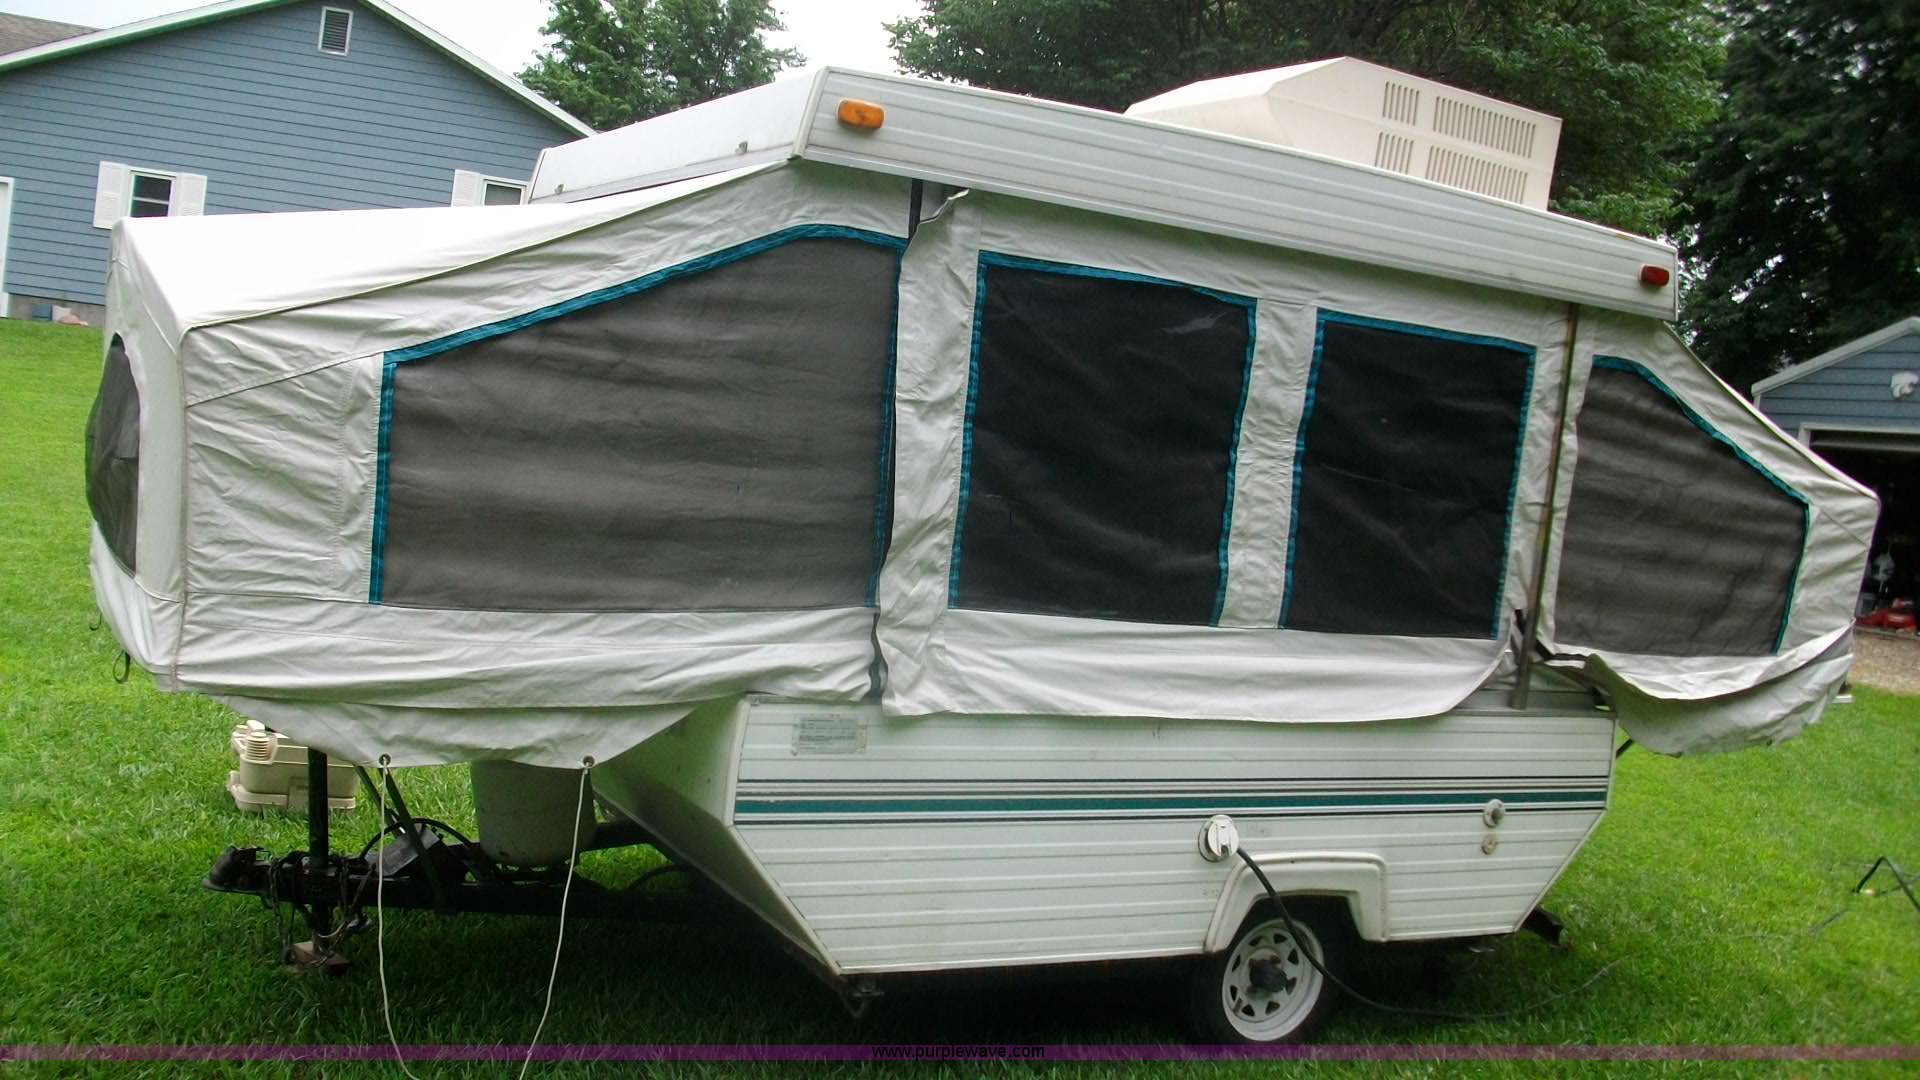 1995 palomino colt pop up camper item d1048 sold july 2 palomino colt pop up camper full size in new window sciox Gallery